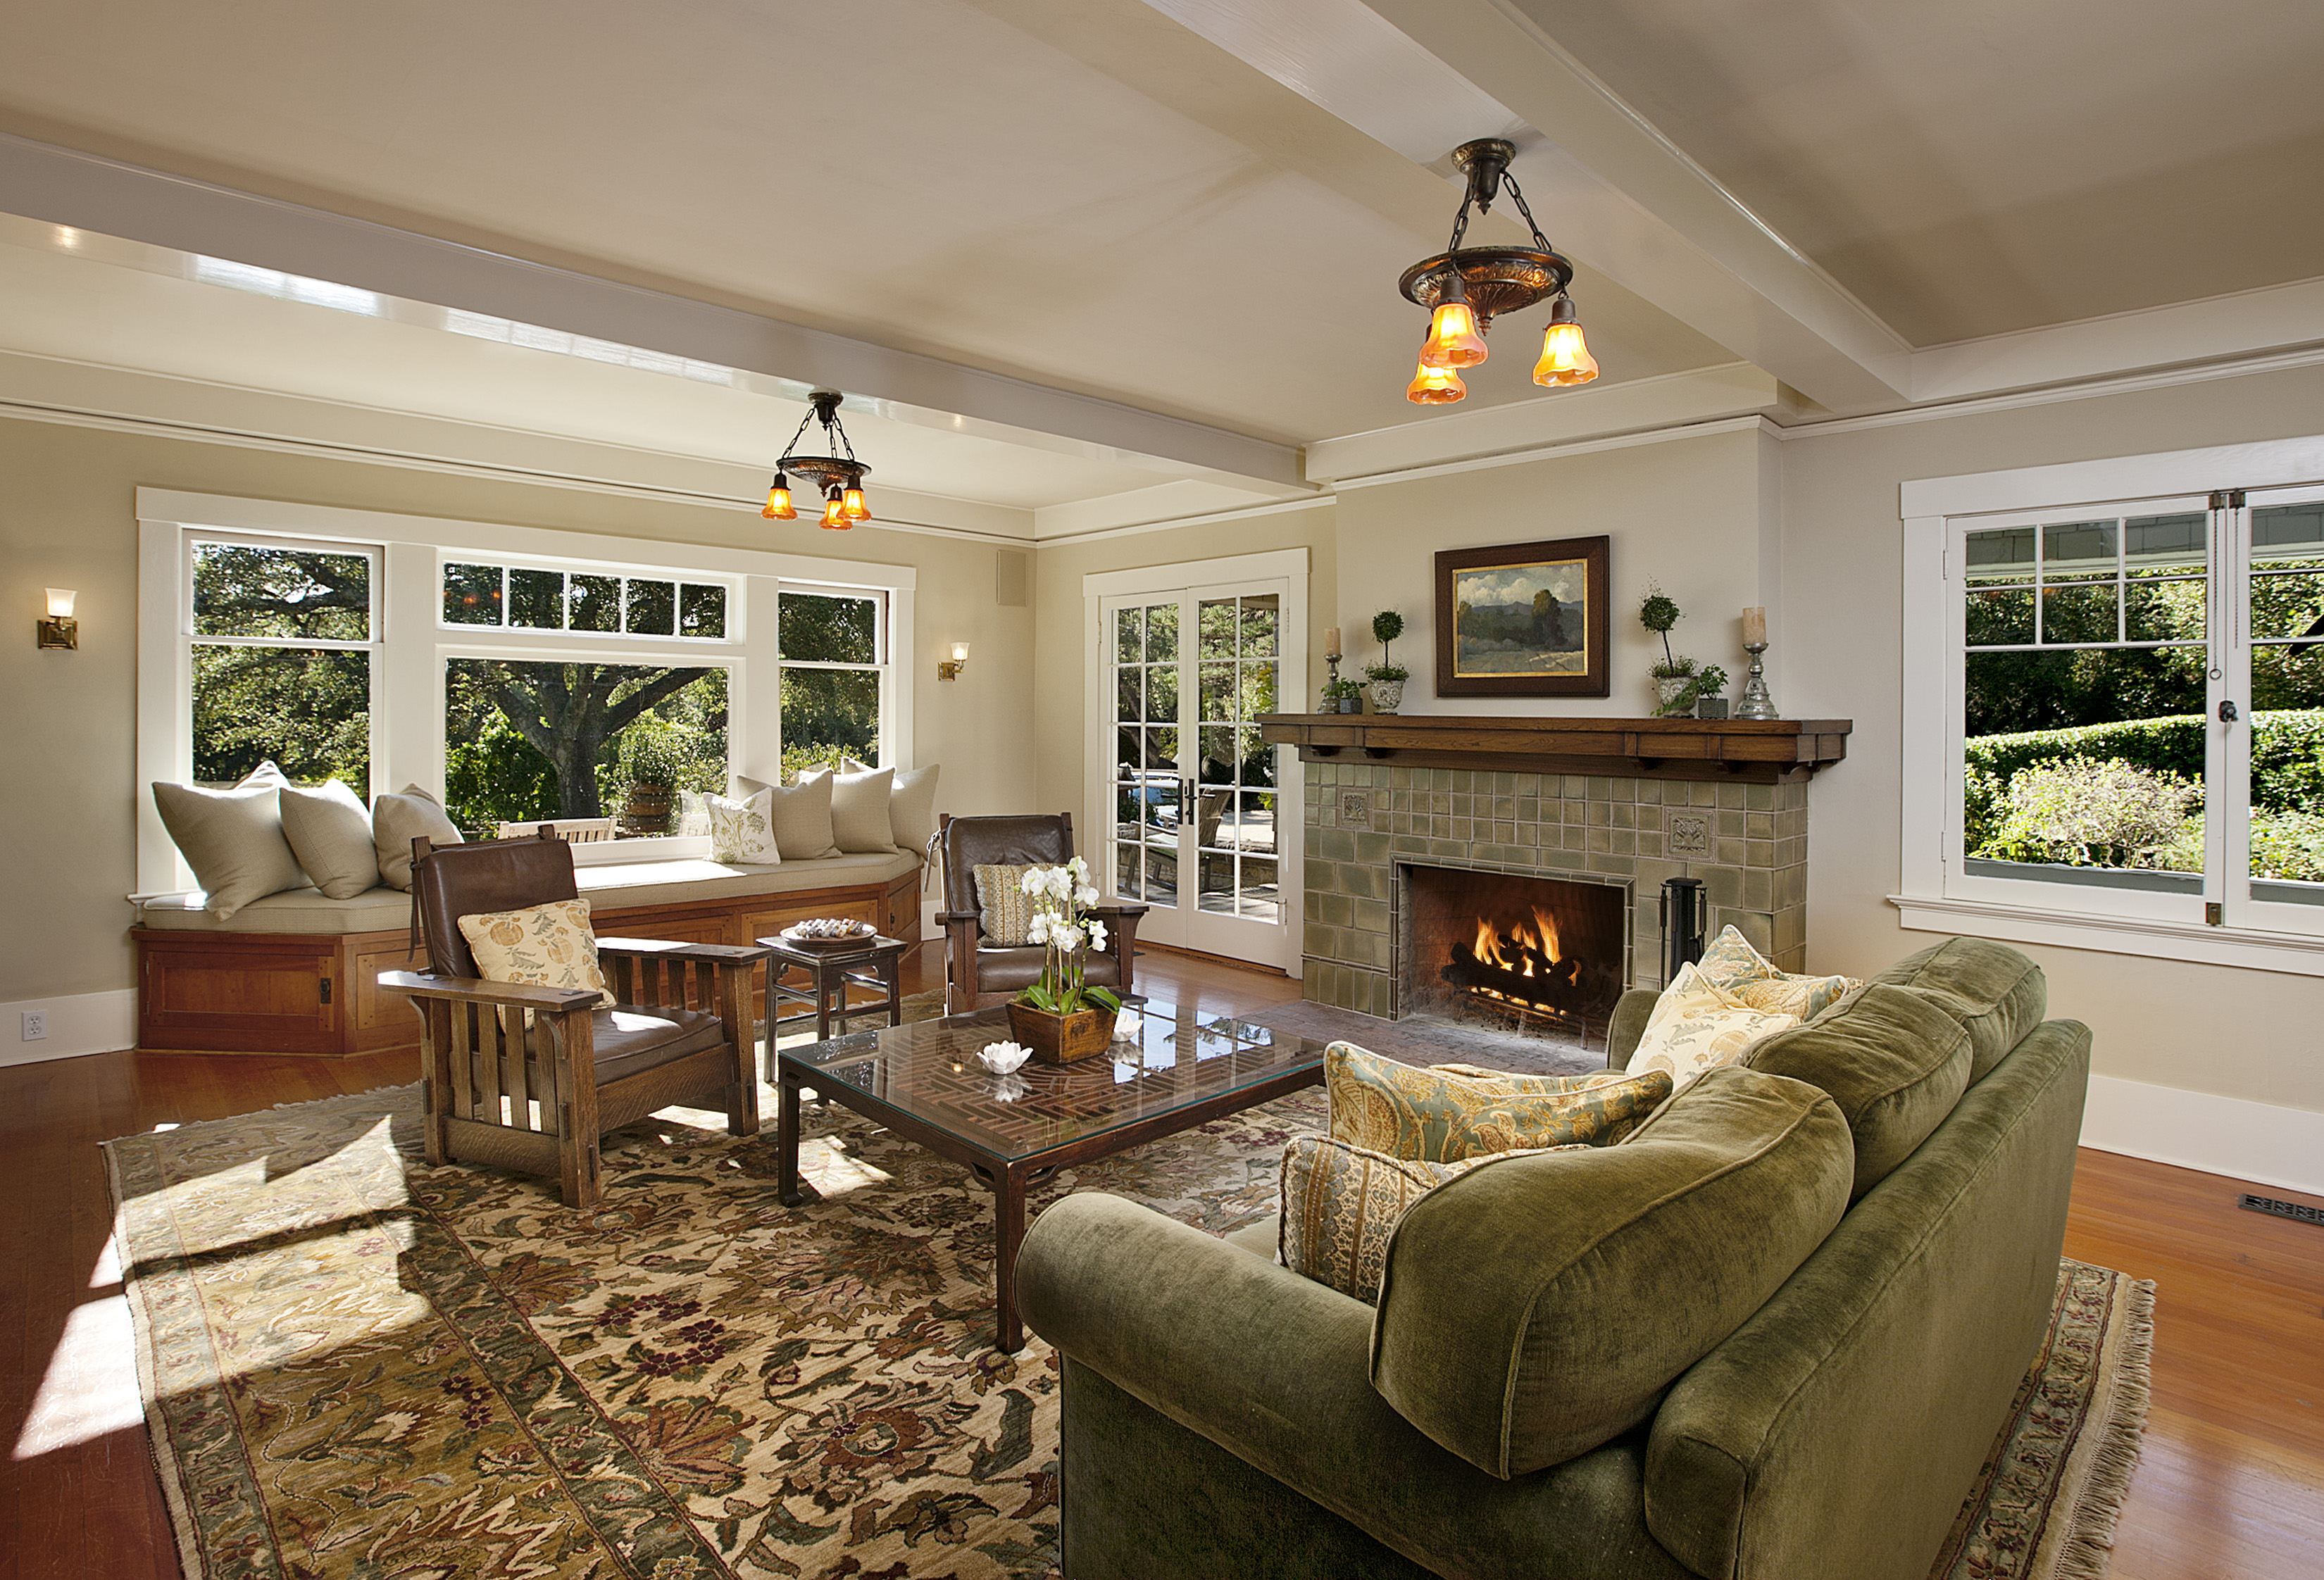 Popular home styles for 2012 montecito real estate for Interior design styles living room